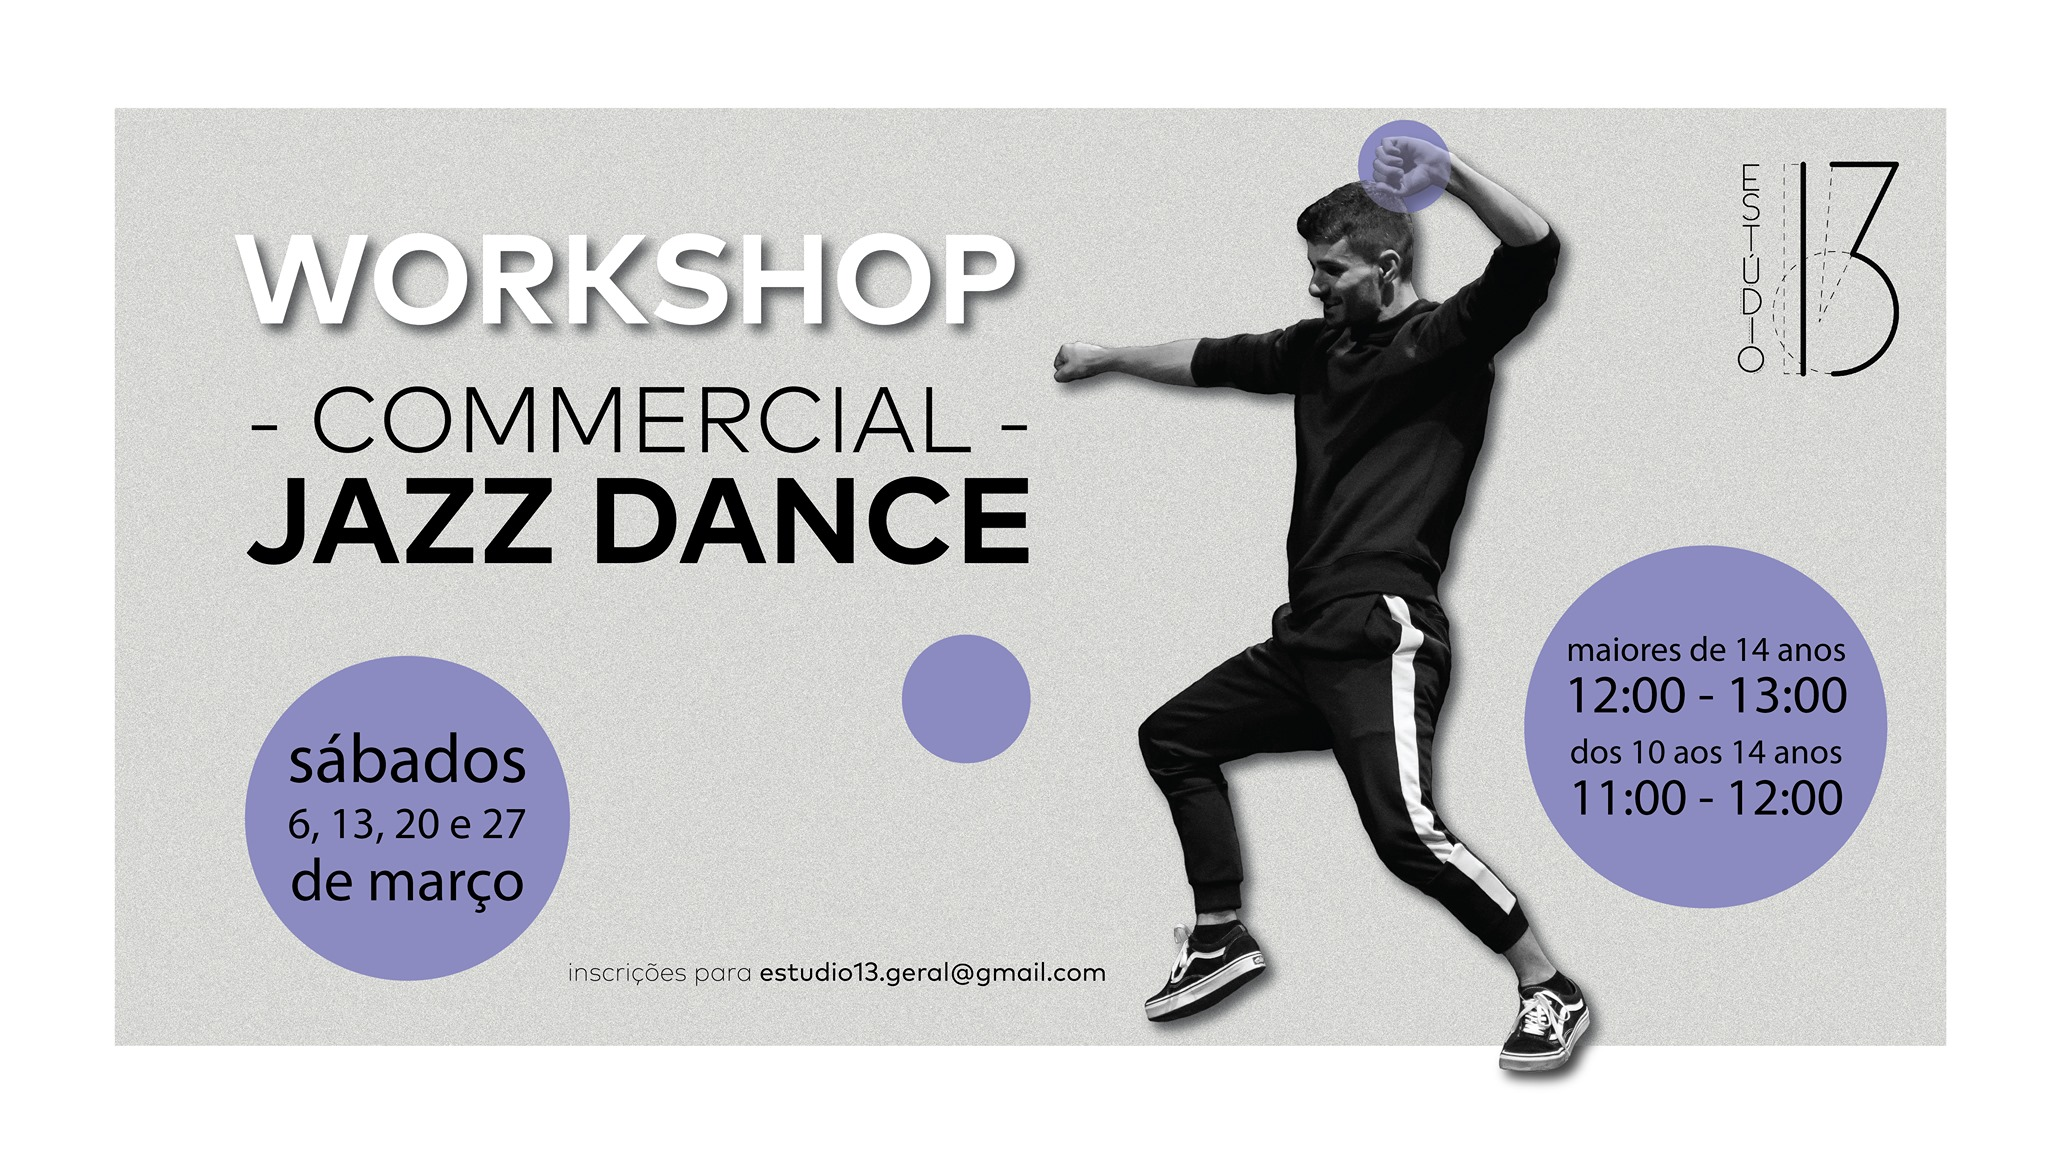 Workshop de Commercial Jazz Dance com João Soares